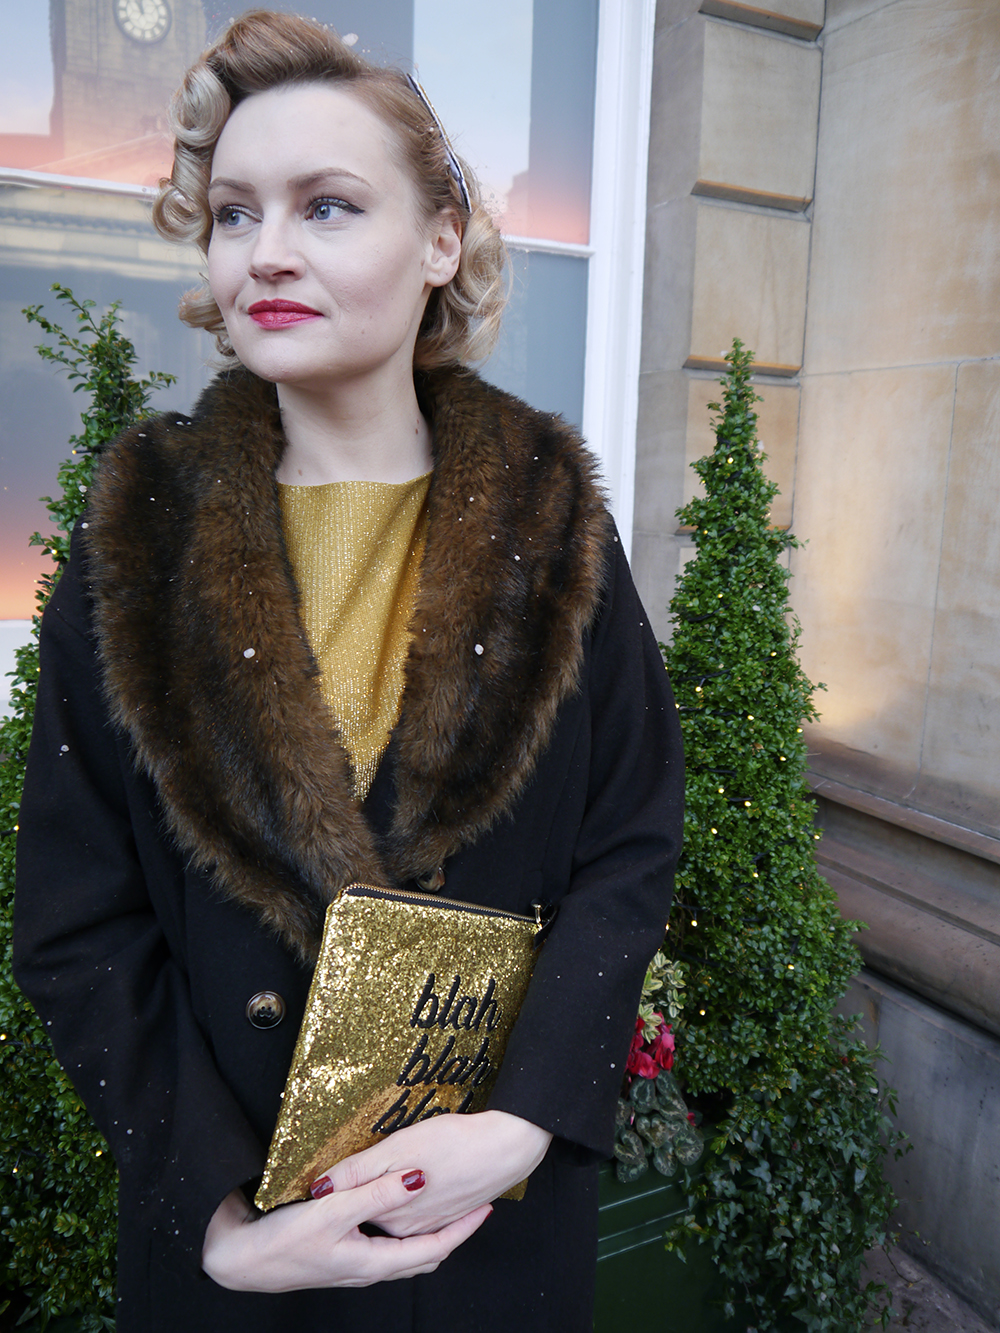 British vintage style blogger, faux fur trimmed Henry Holland coat, gold glitter clutch for christmas party, easy vintage pincurl style with tongs, fashion blogger christmas outfit, SoS15 glitter bag, wardrobe conversations blogging duo, top Scottish blogger